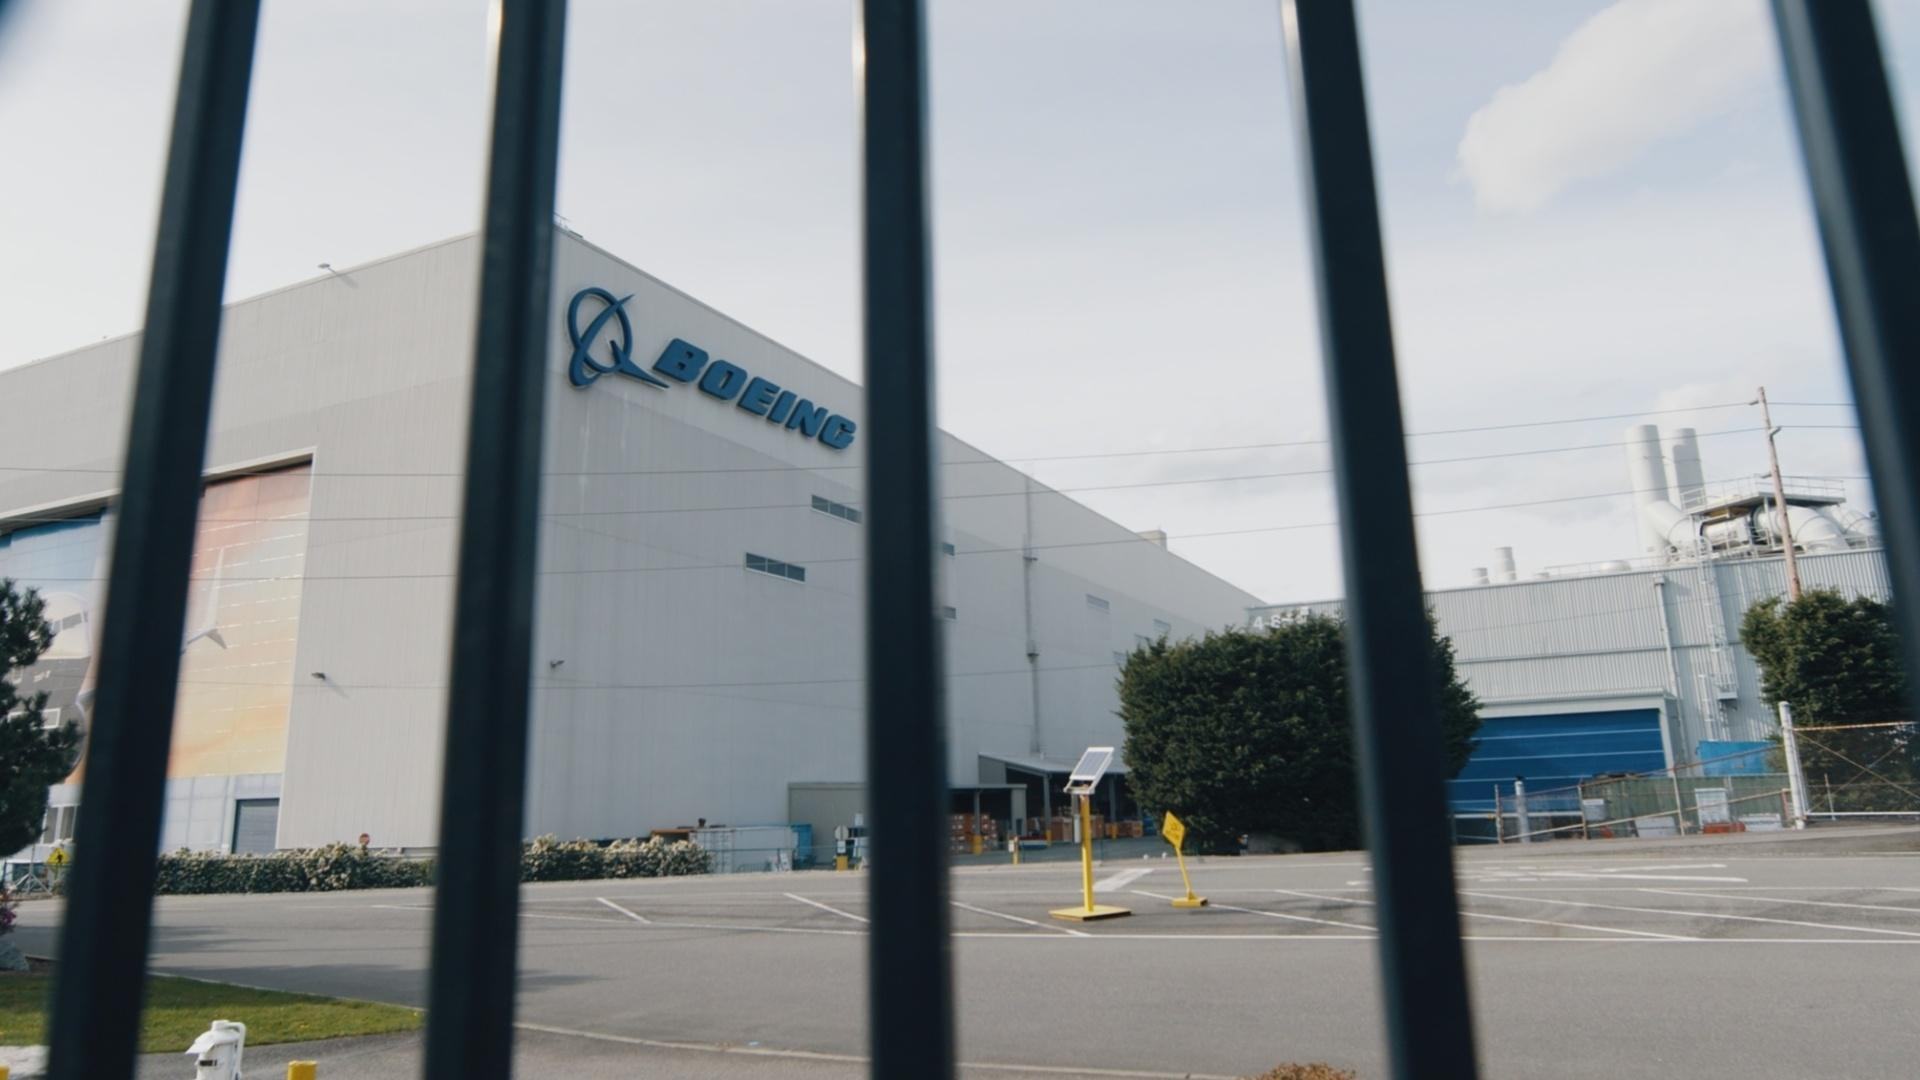 The outside of a Boeing plant seen through the bars of a gate